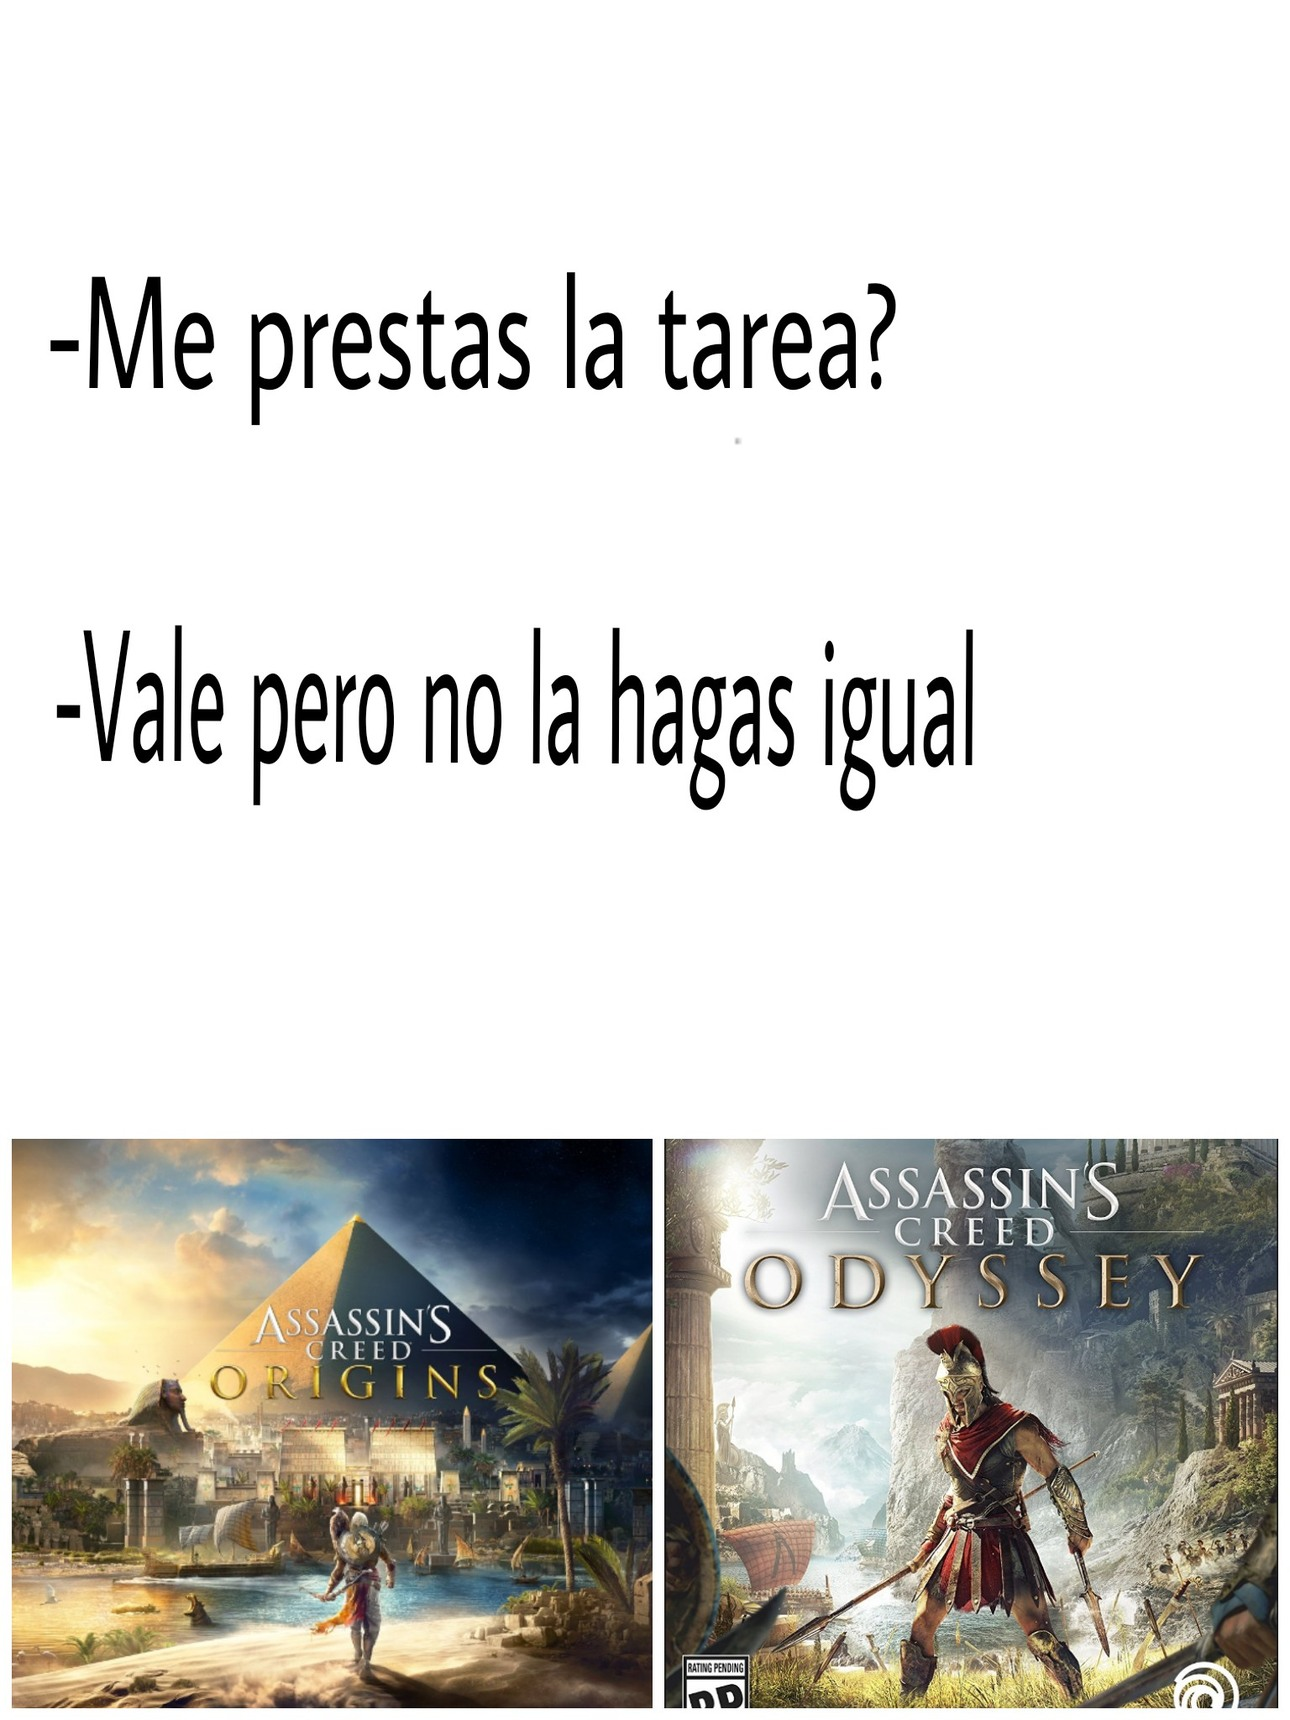 Assassin's Creed - meme